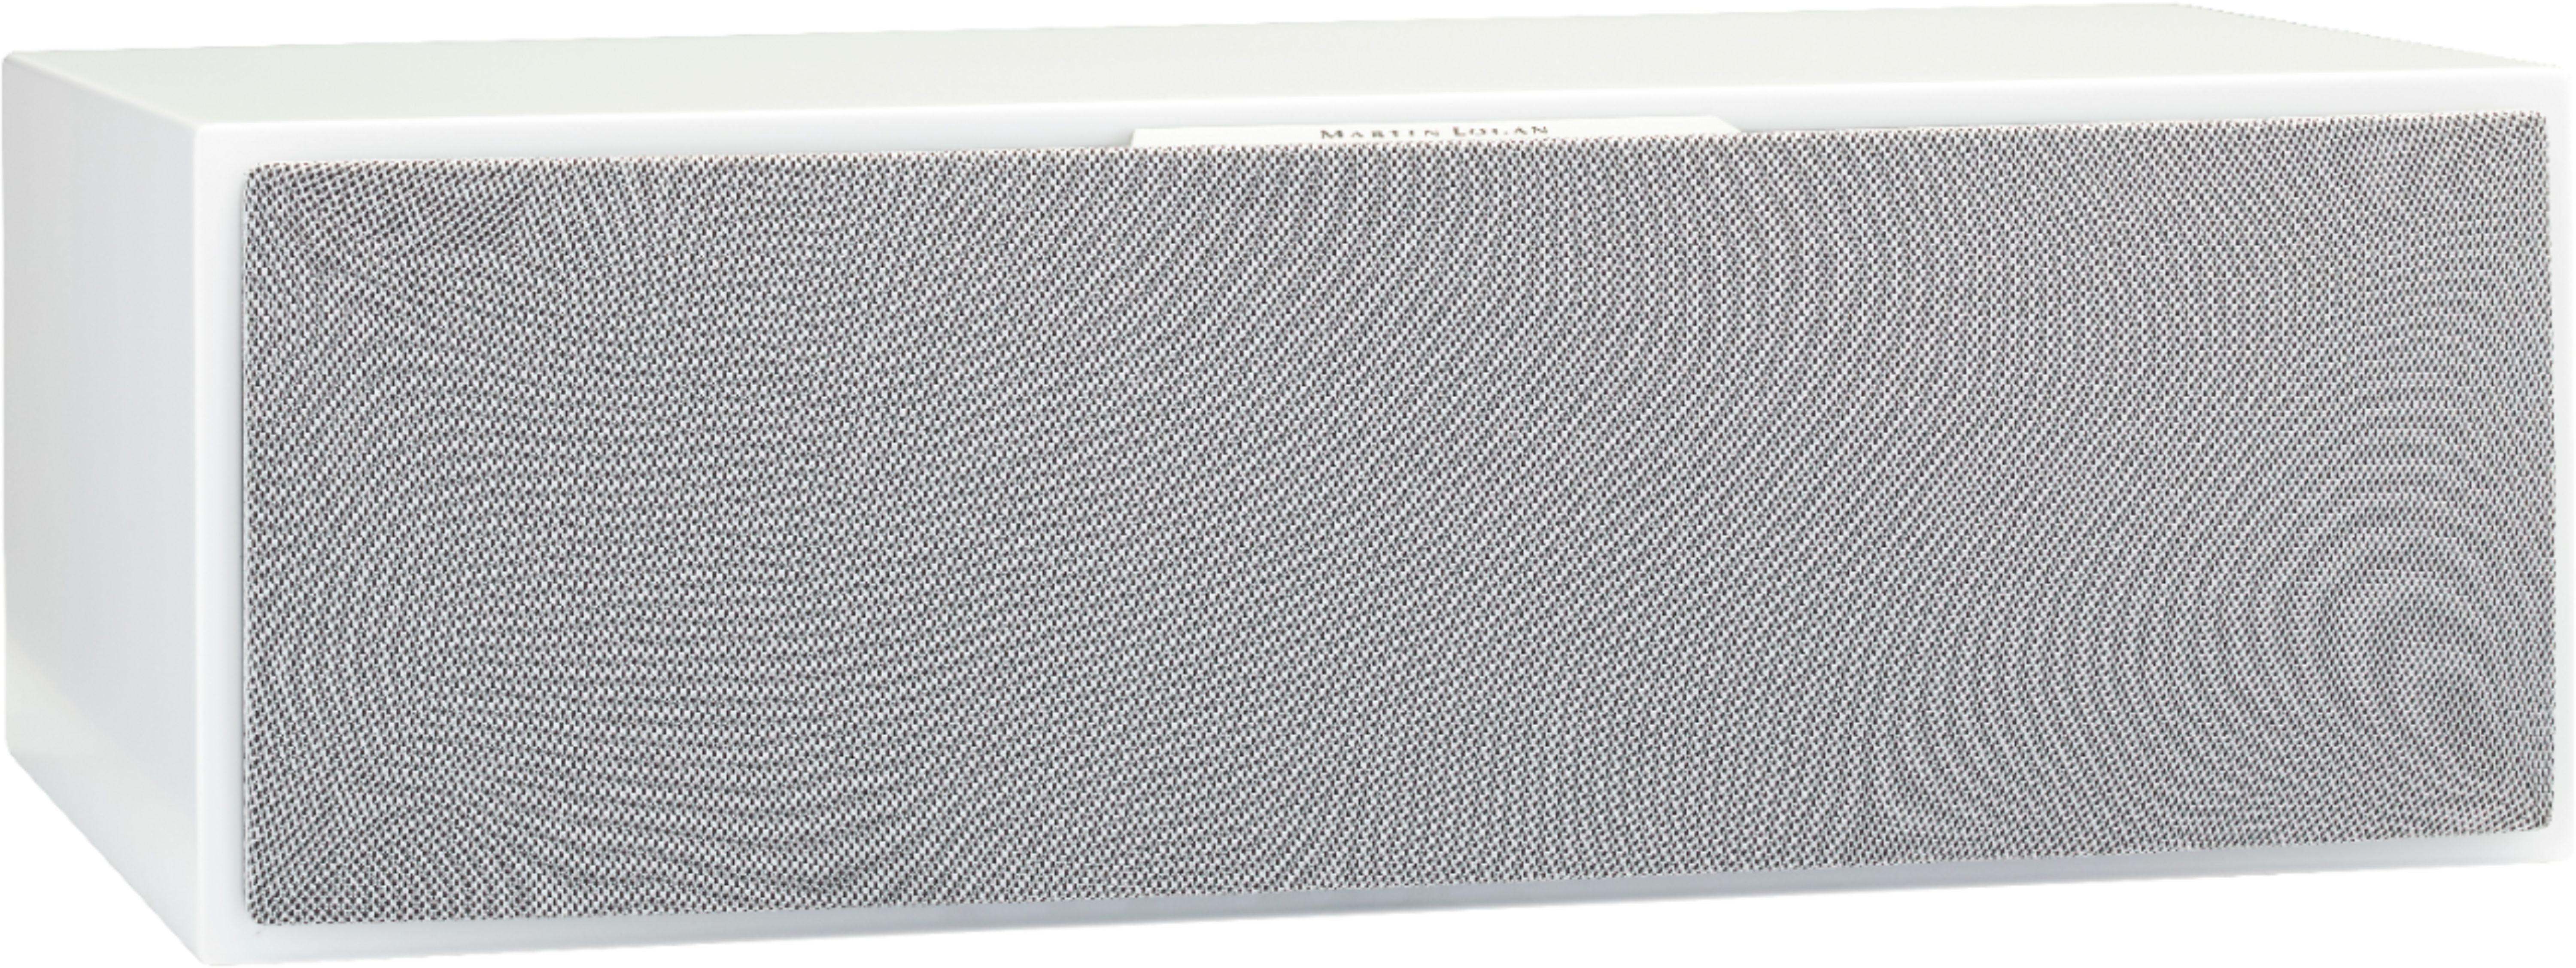 "Motion Dual 6-1/2"" Passive 2.5-way Center-Channel Speaker Matte White"